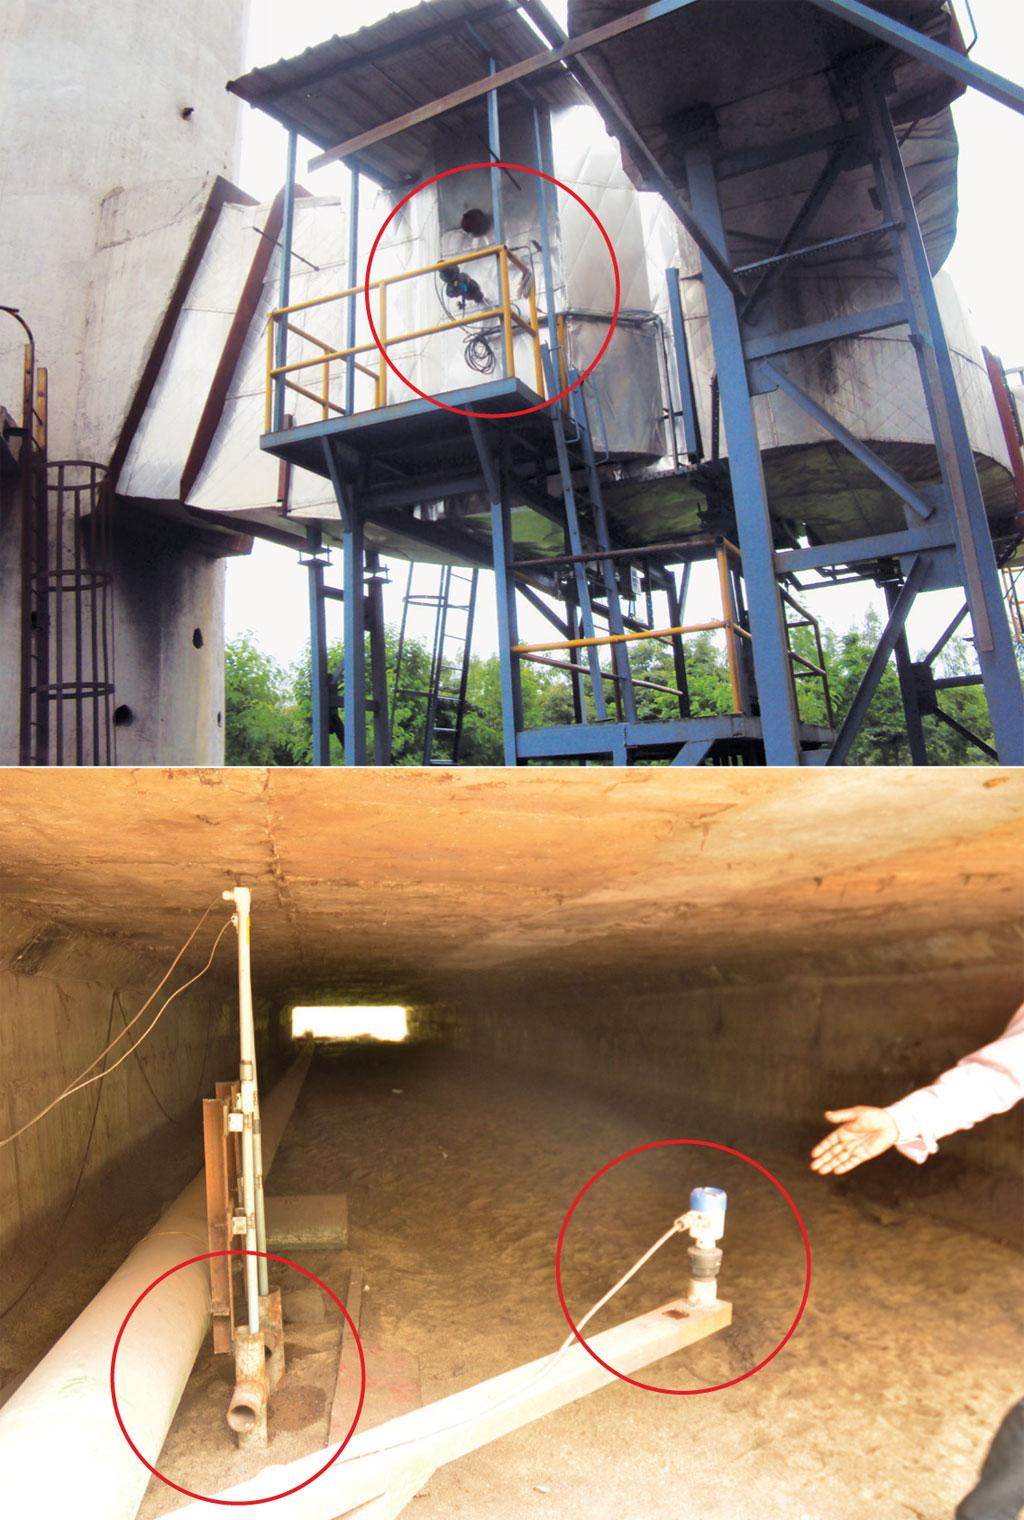 (Top) A wrongly installed